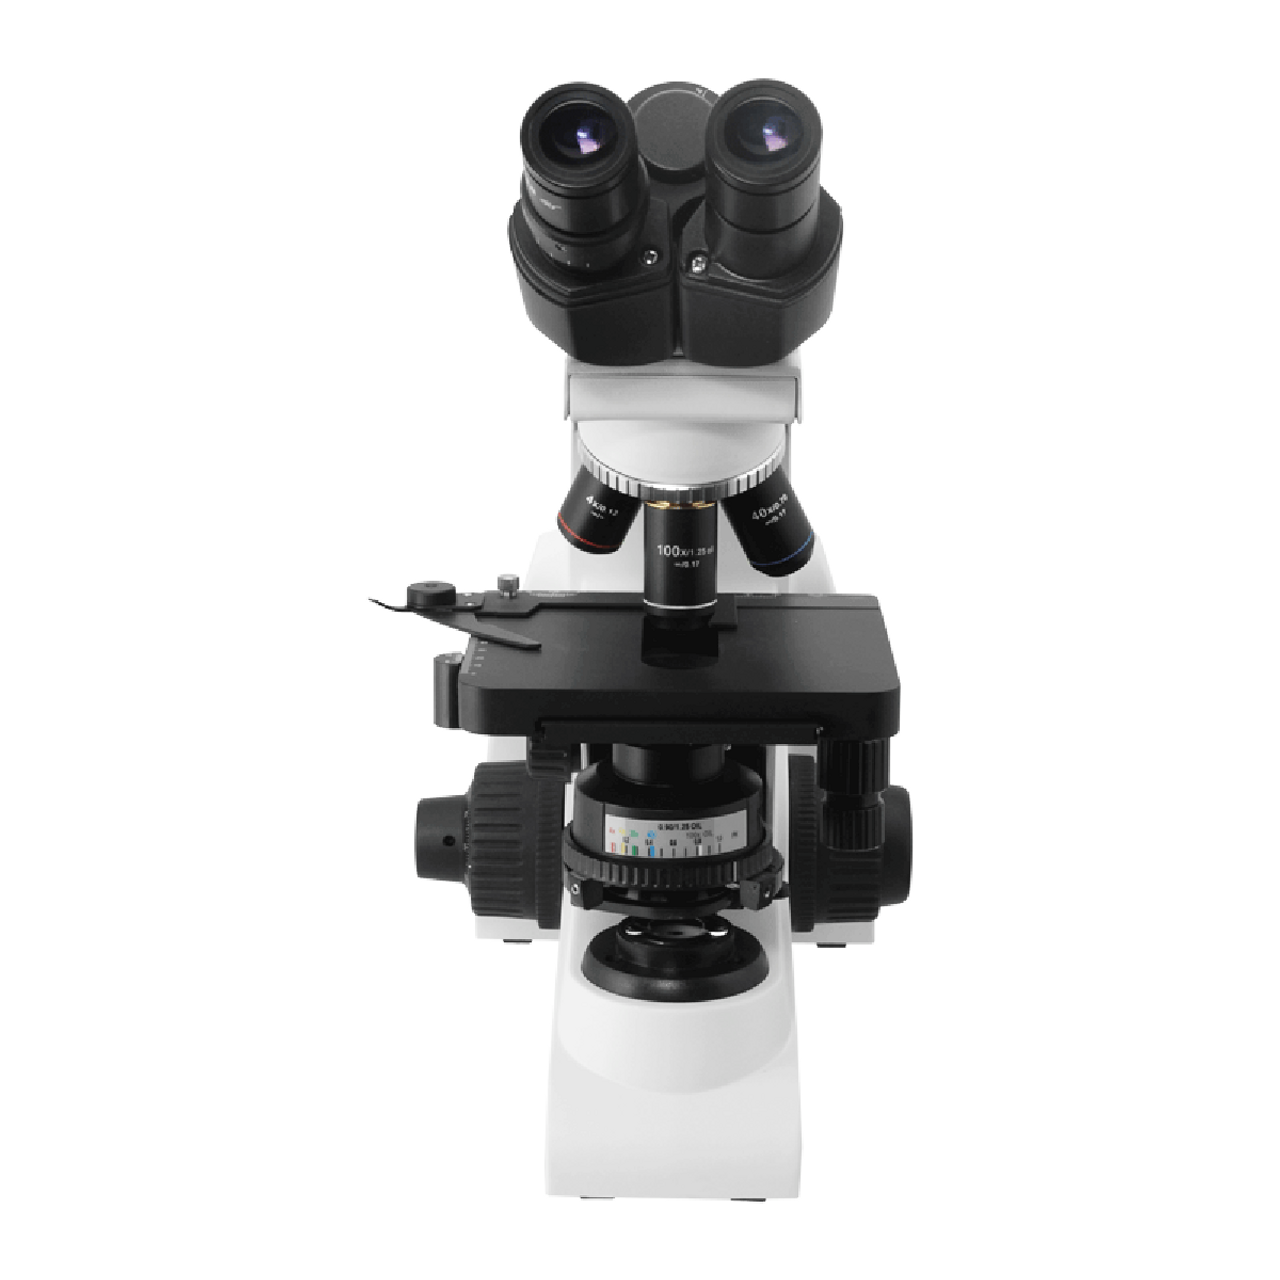 High Eyepoint BM03012211 Field of View 18mm Reticle Size Mount 20mm Mounting Size 23.2mm BoliOptics WF 10X Widefield Microscope Eyepieces Pair